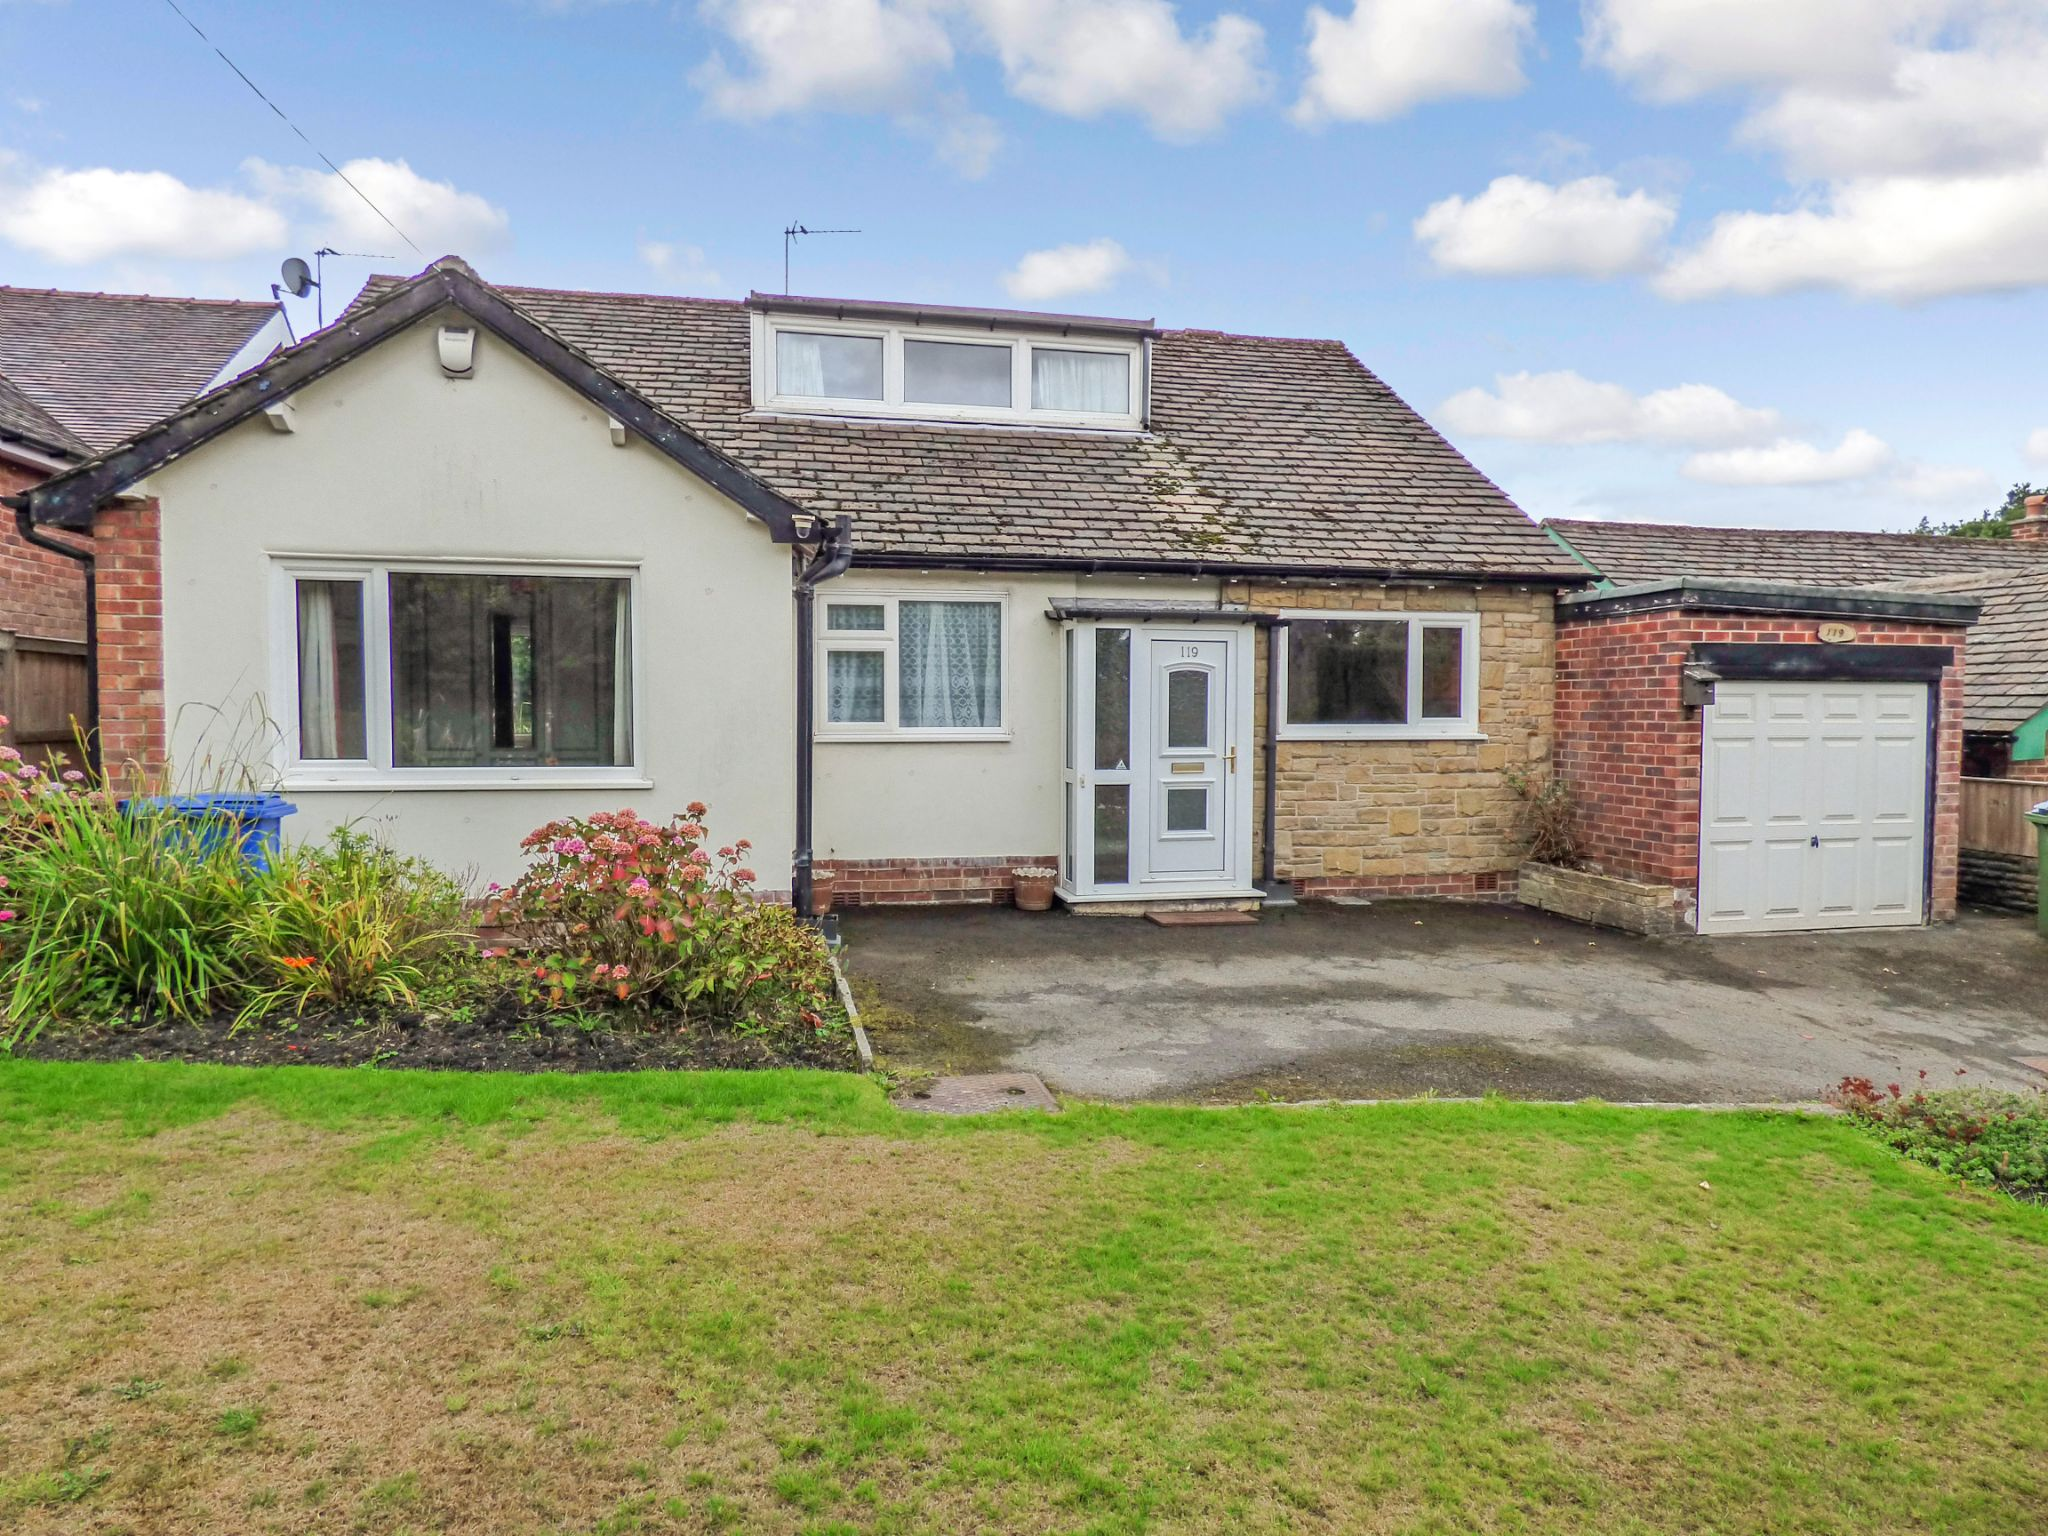 3 Bedroom Detached Bungalow For Sale - Photograph 1